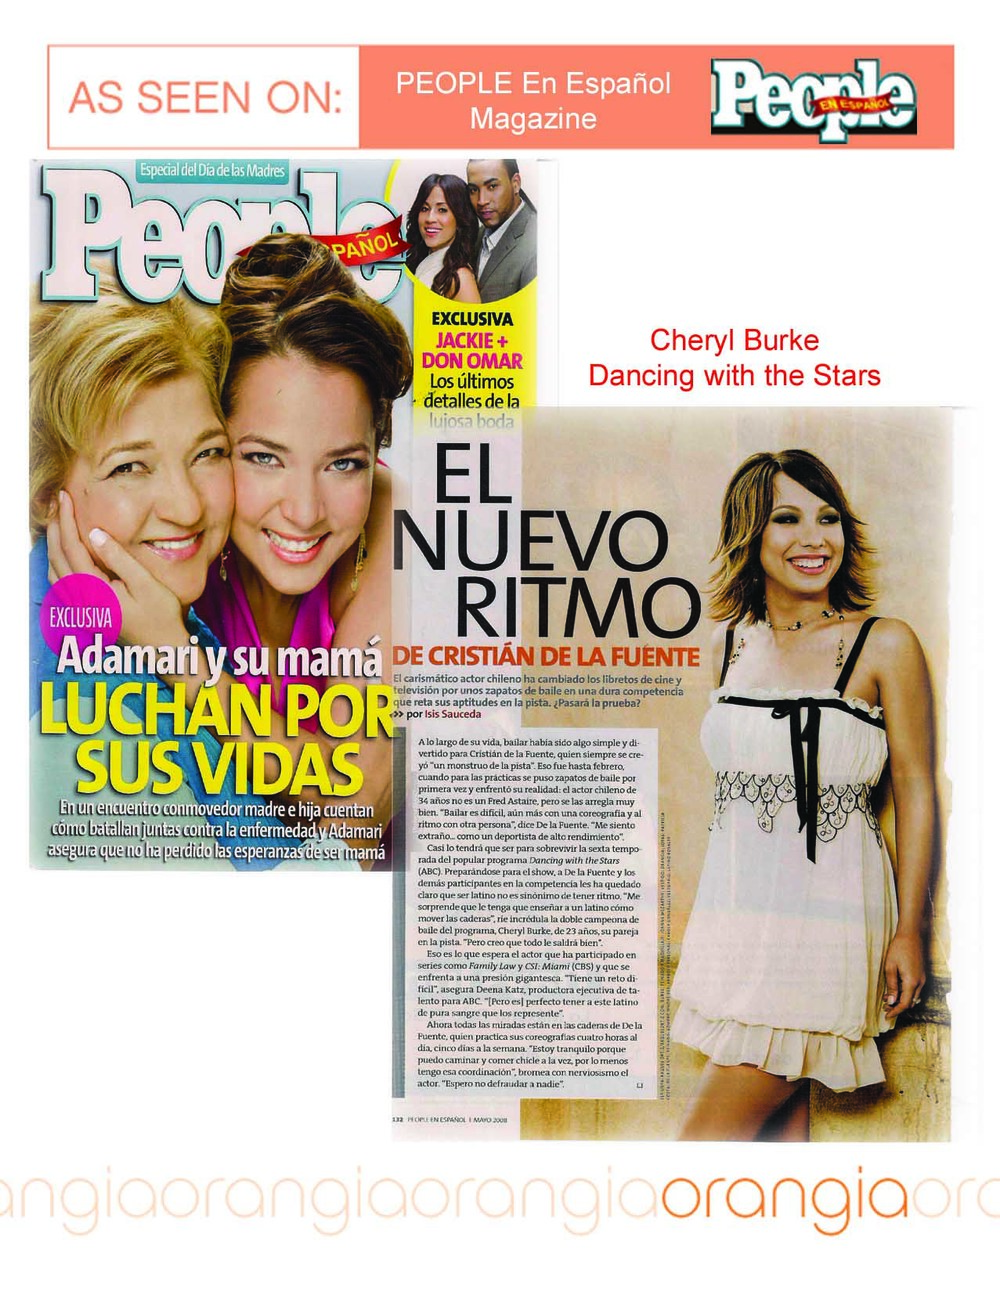 people en espanol cheryl burke copy.jpg